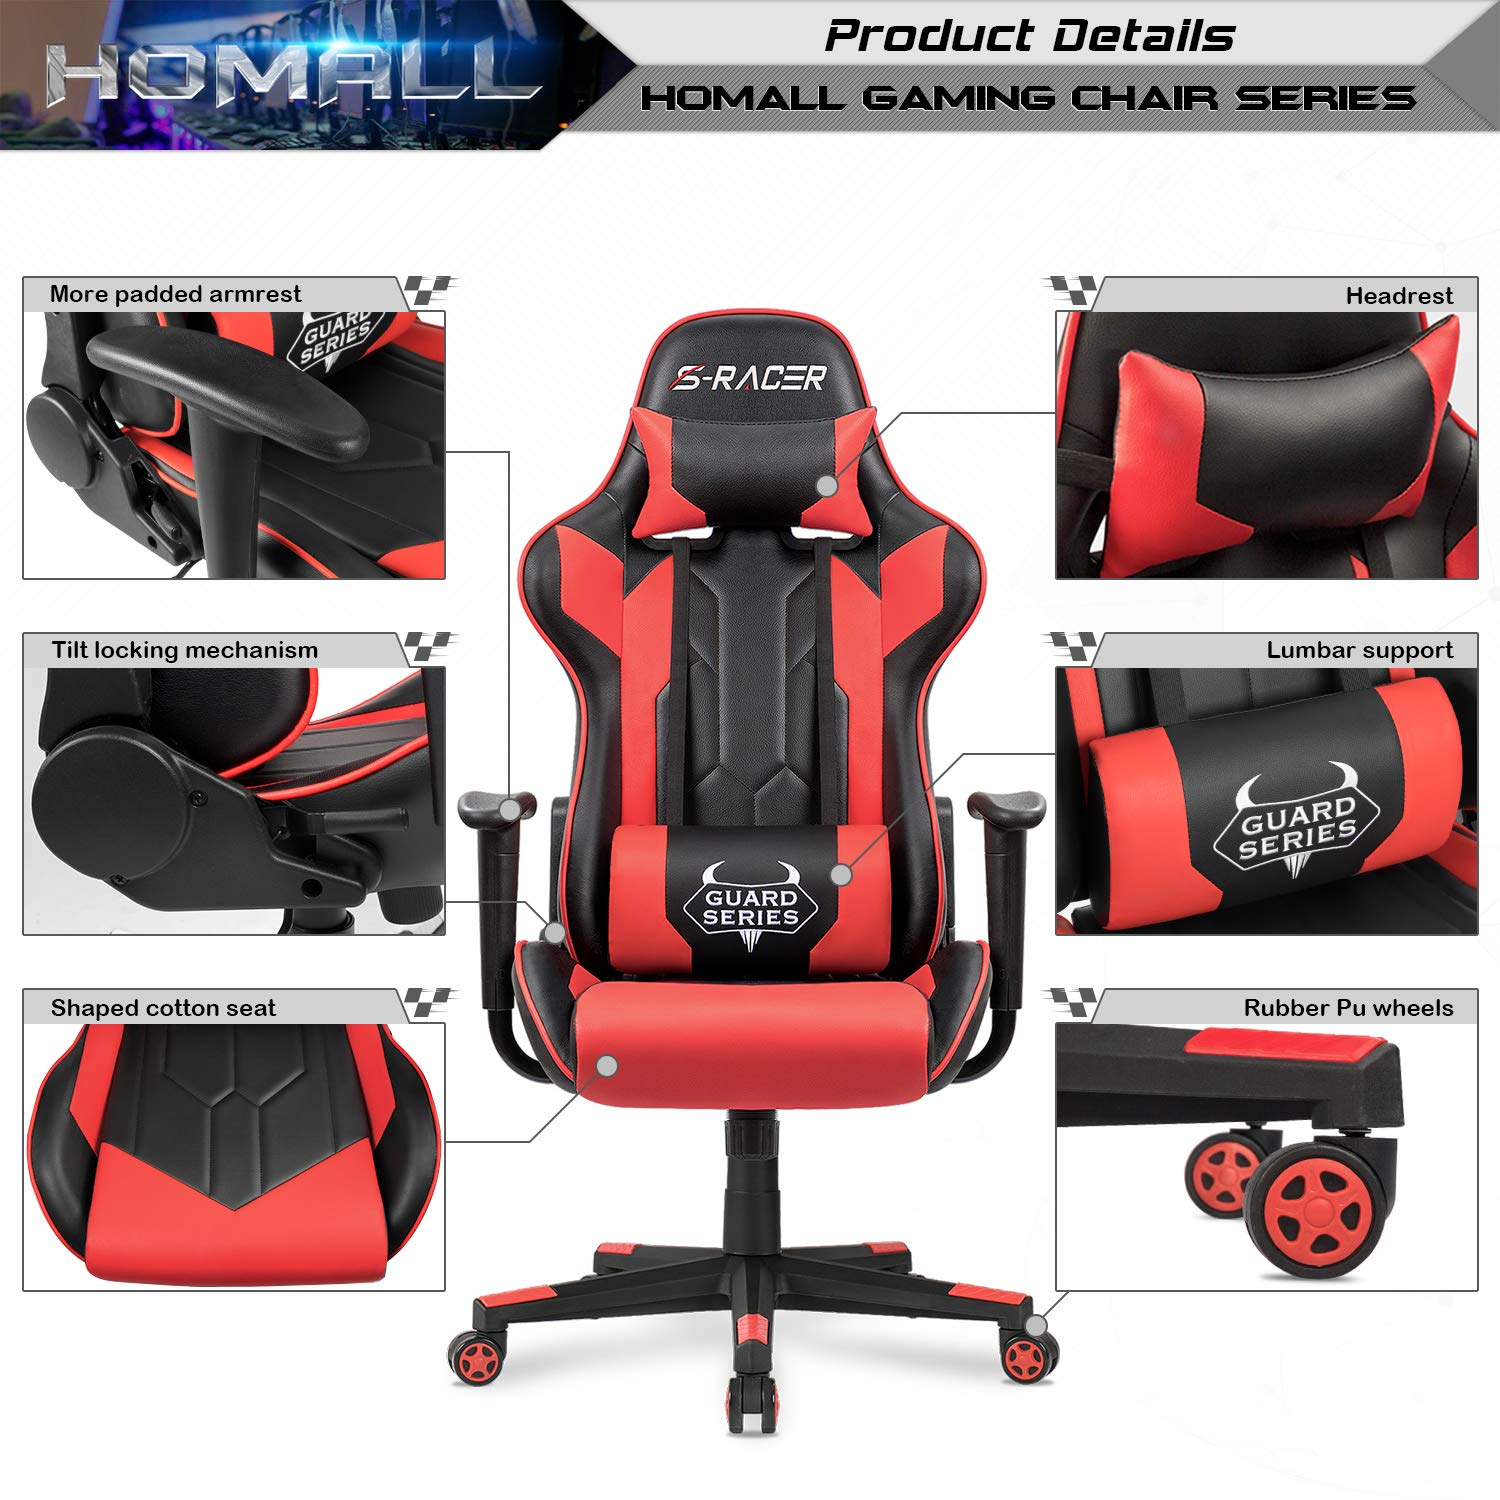 Homall Executive Swivel Leather Gaming Chair, Racing Style High Back Chair with Lumbar Support and Headrest (NSR/Red) by Homall (Image #3)